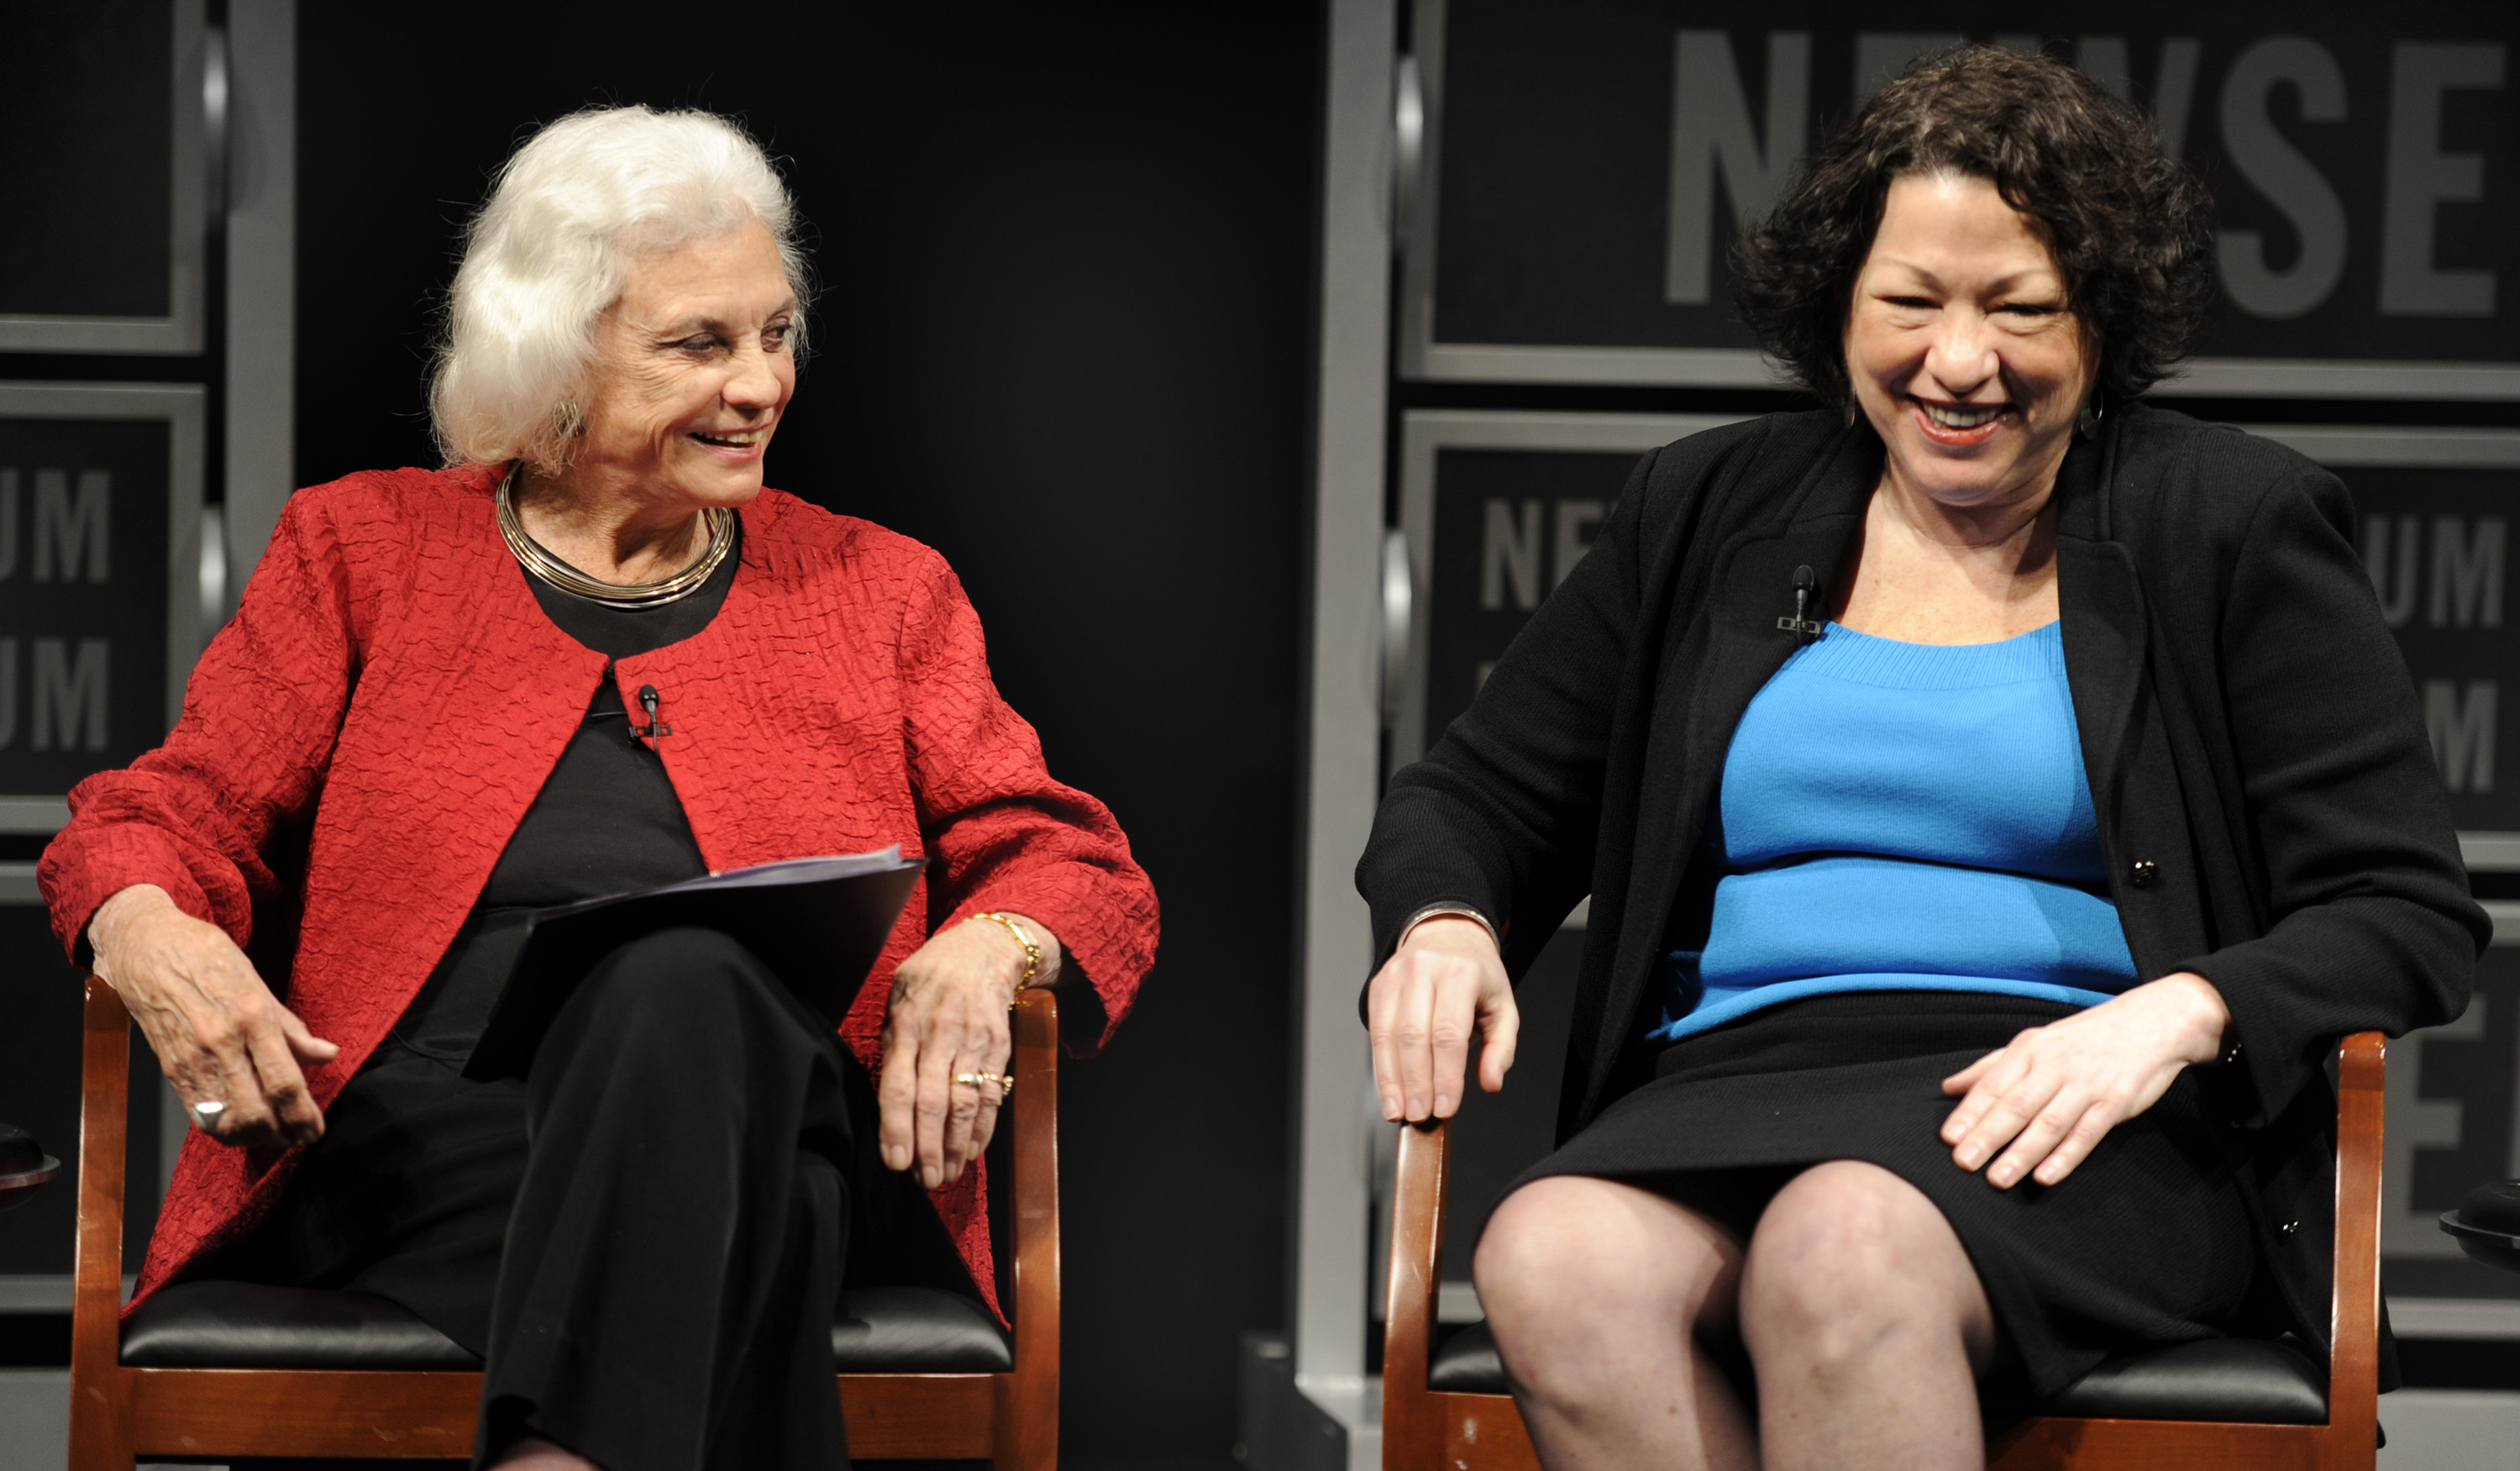 The first female supreme court justice, Sandra Day O'Connor (L), and fellow Justice Sonia Sotomayor share a light-hearted moment during a forum at the Newseum in Washington, DC, April 11, 2012, to mark the 30th anniversary of O'Connor's first term on the Supreme Court. REUTERS/Mike Theiler